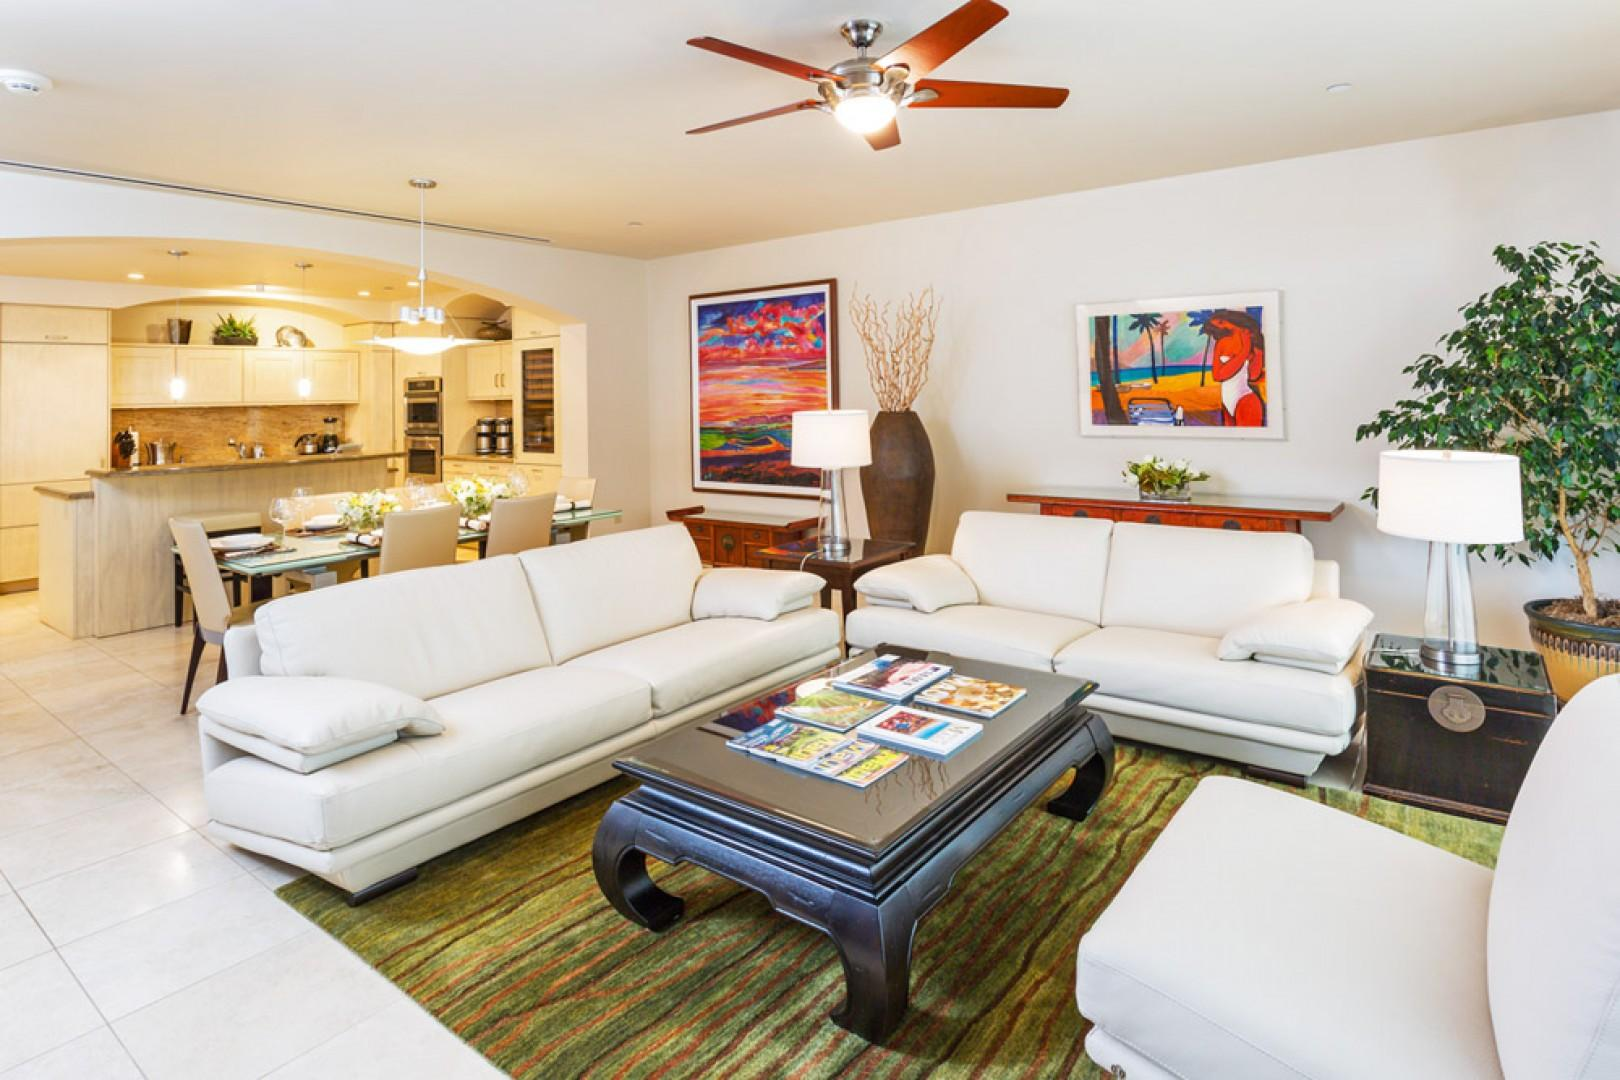 Open floor plan allows the whole group to spend time together.